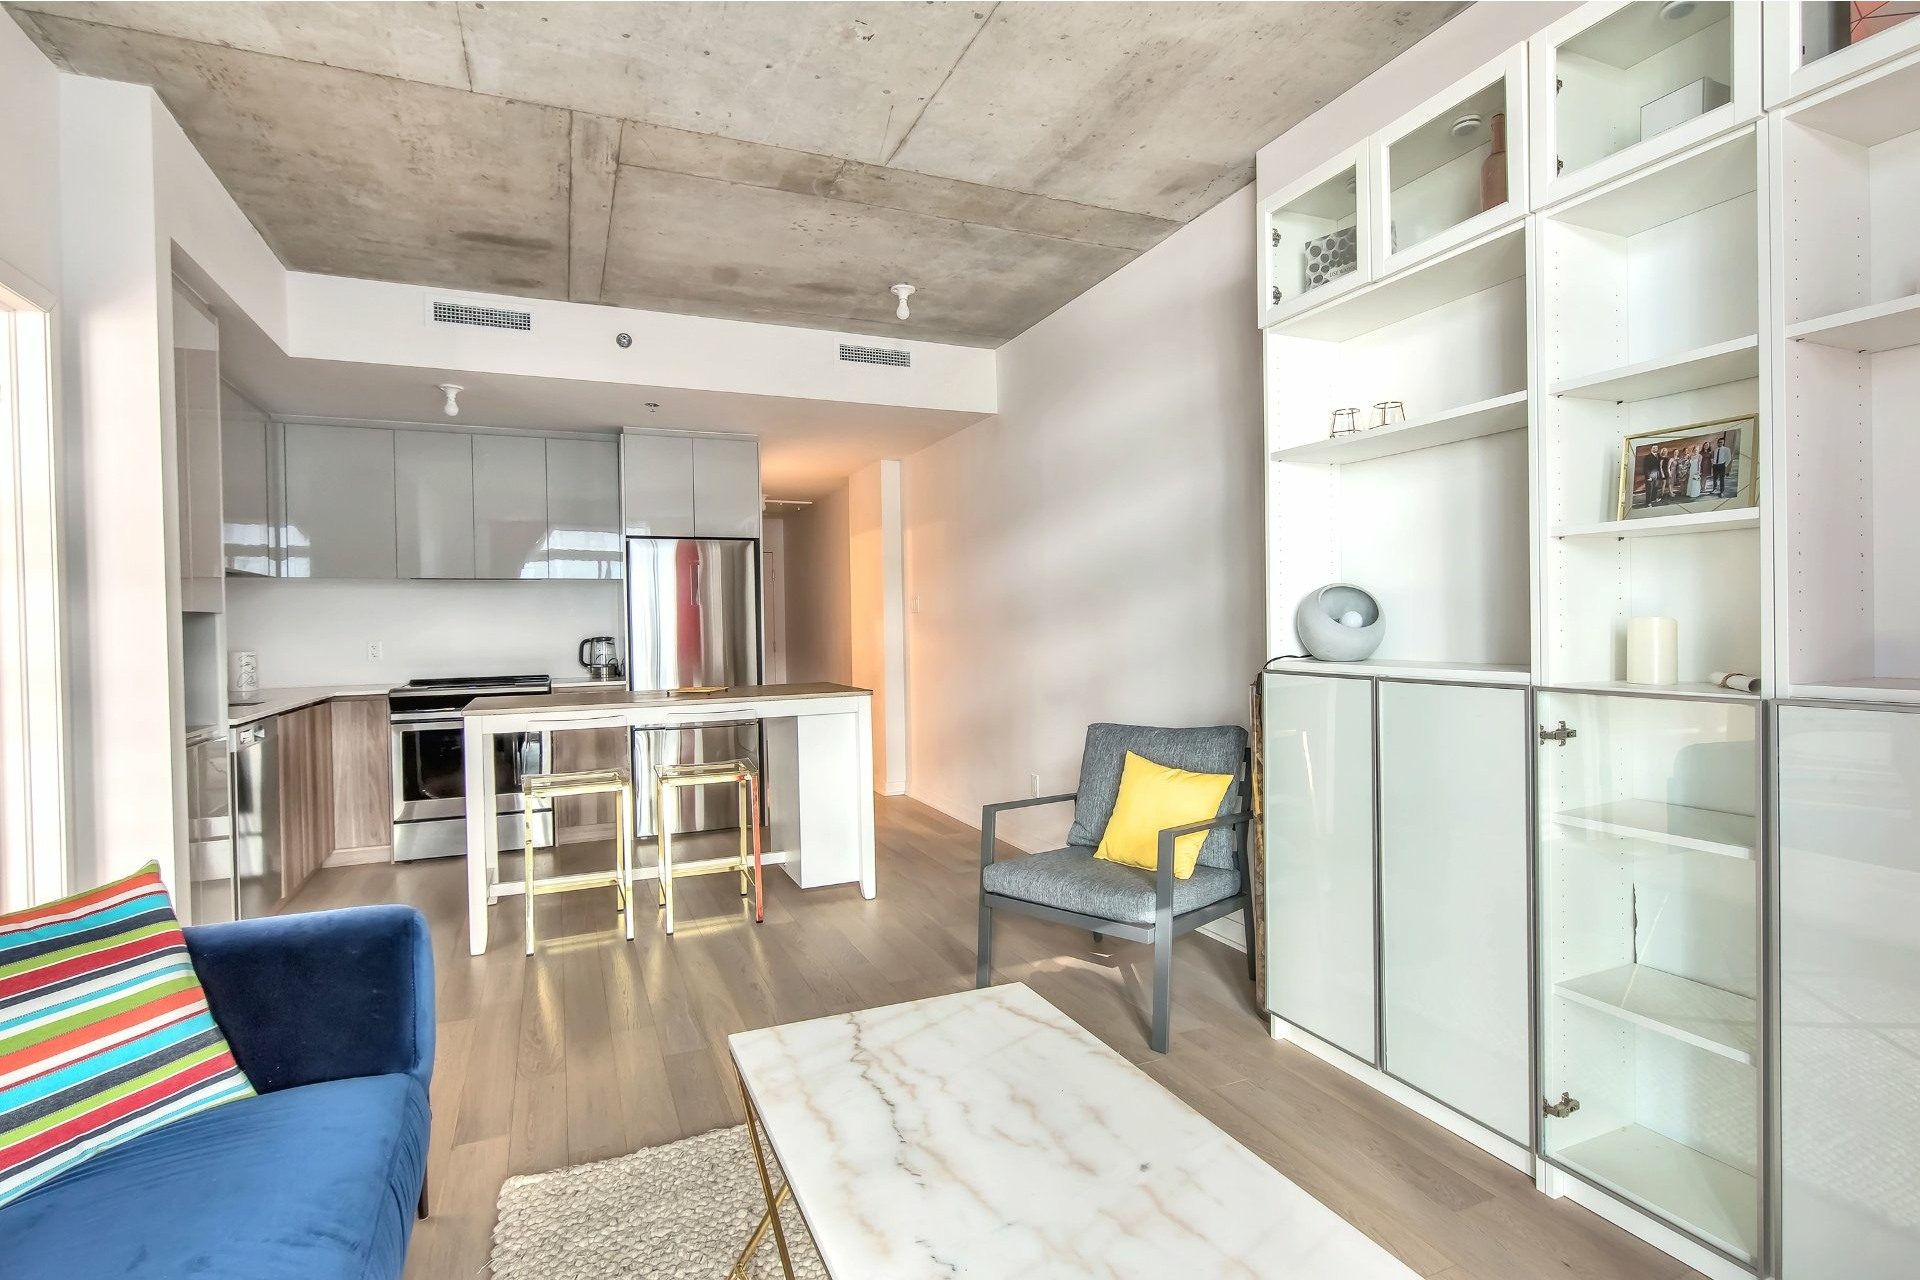 image 13 - Apartment For sale Brossard - 4 rooms